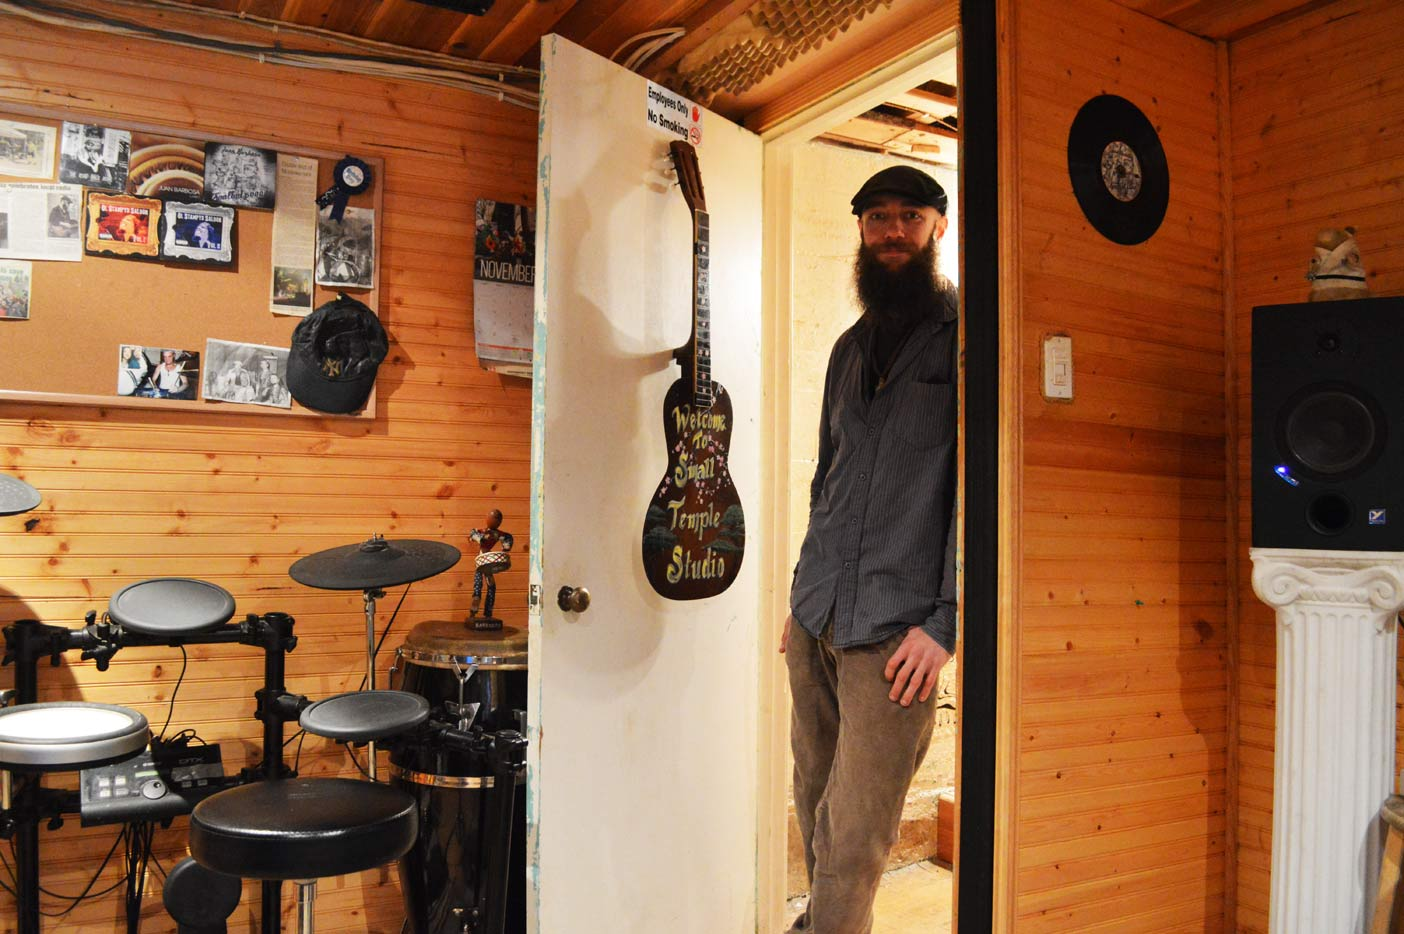 Barbosa leaning in the doorway of his studio, appropriately called Small Temple Studio. His mom made him the door sign from an old guitar he found.